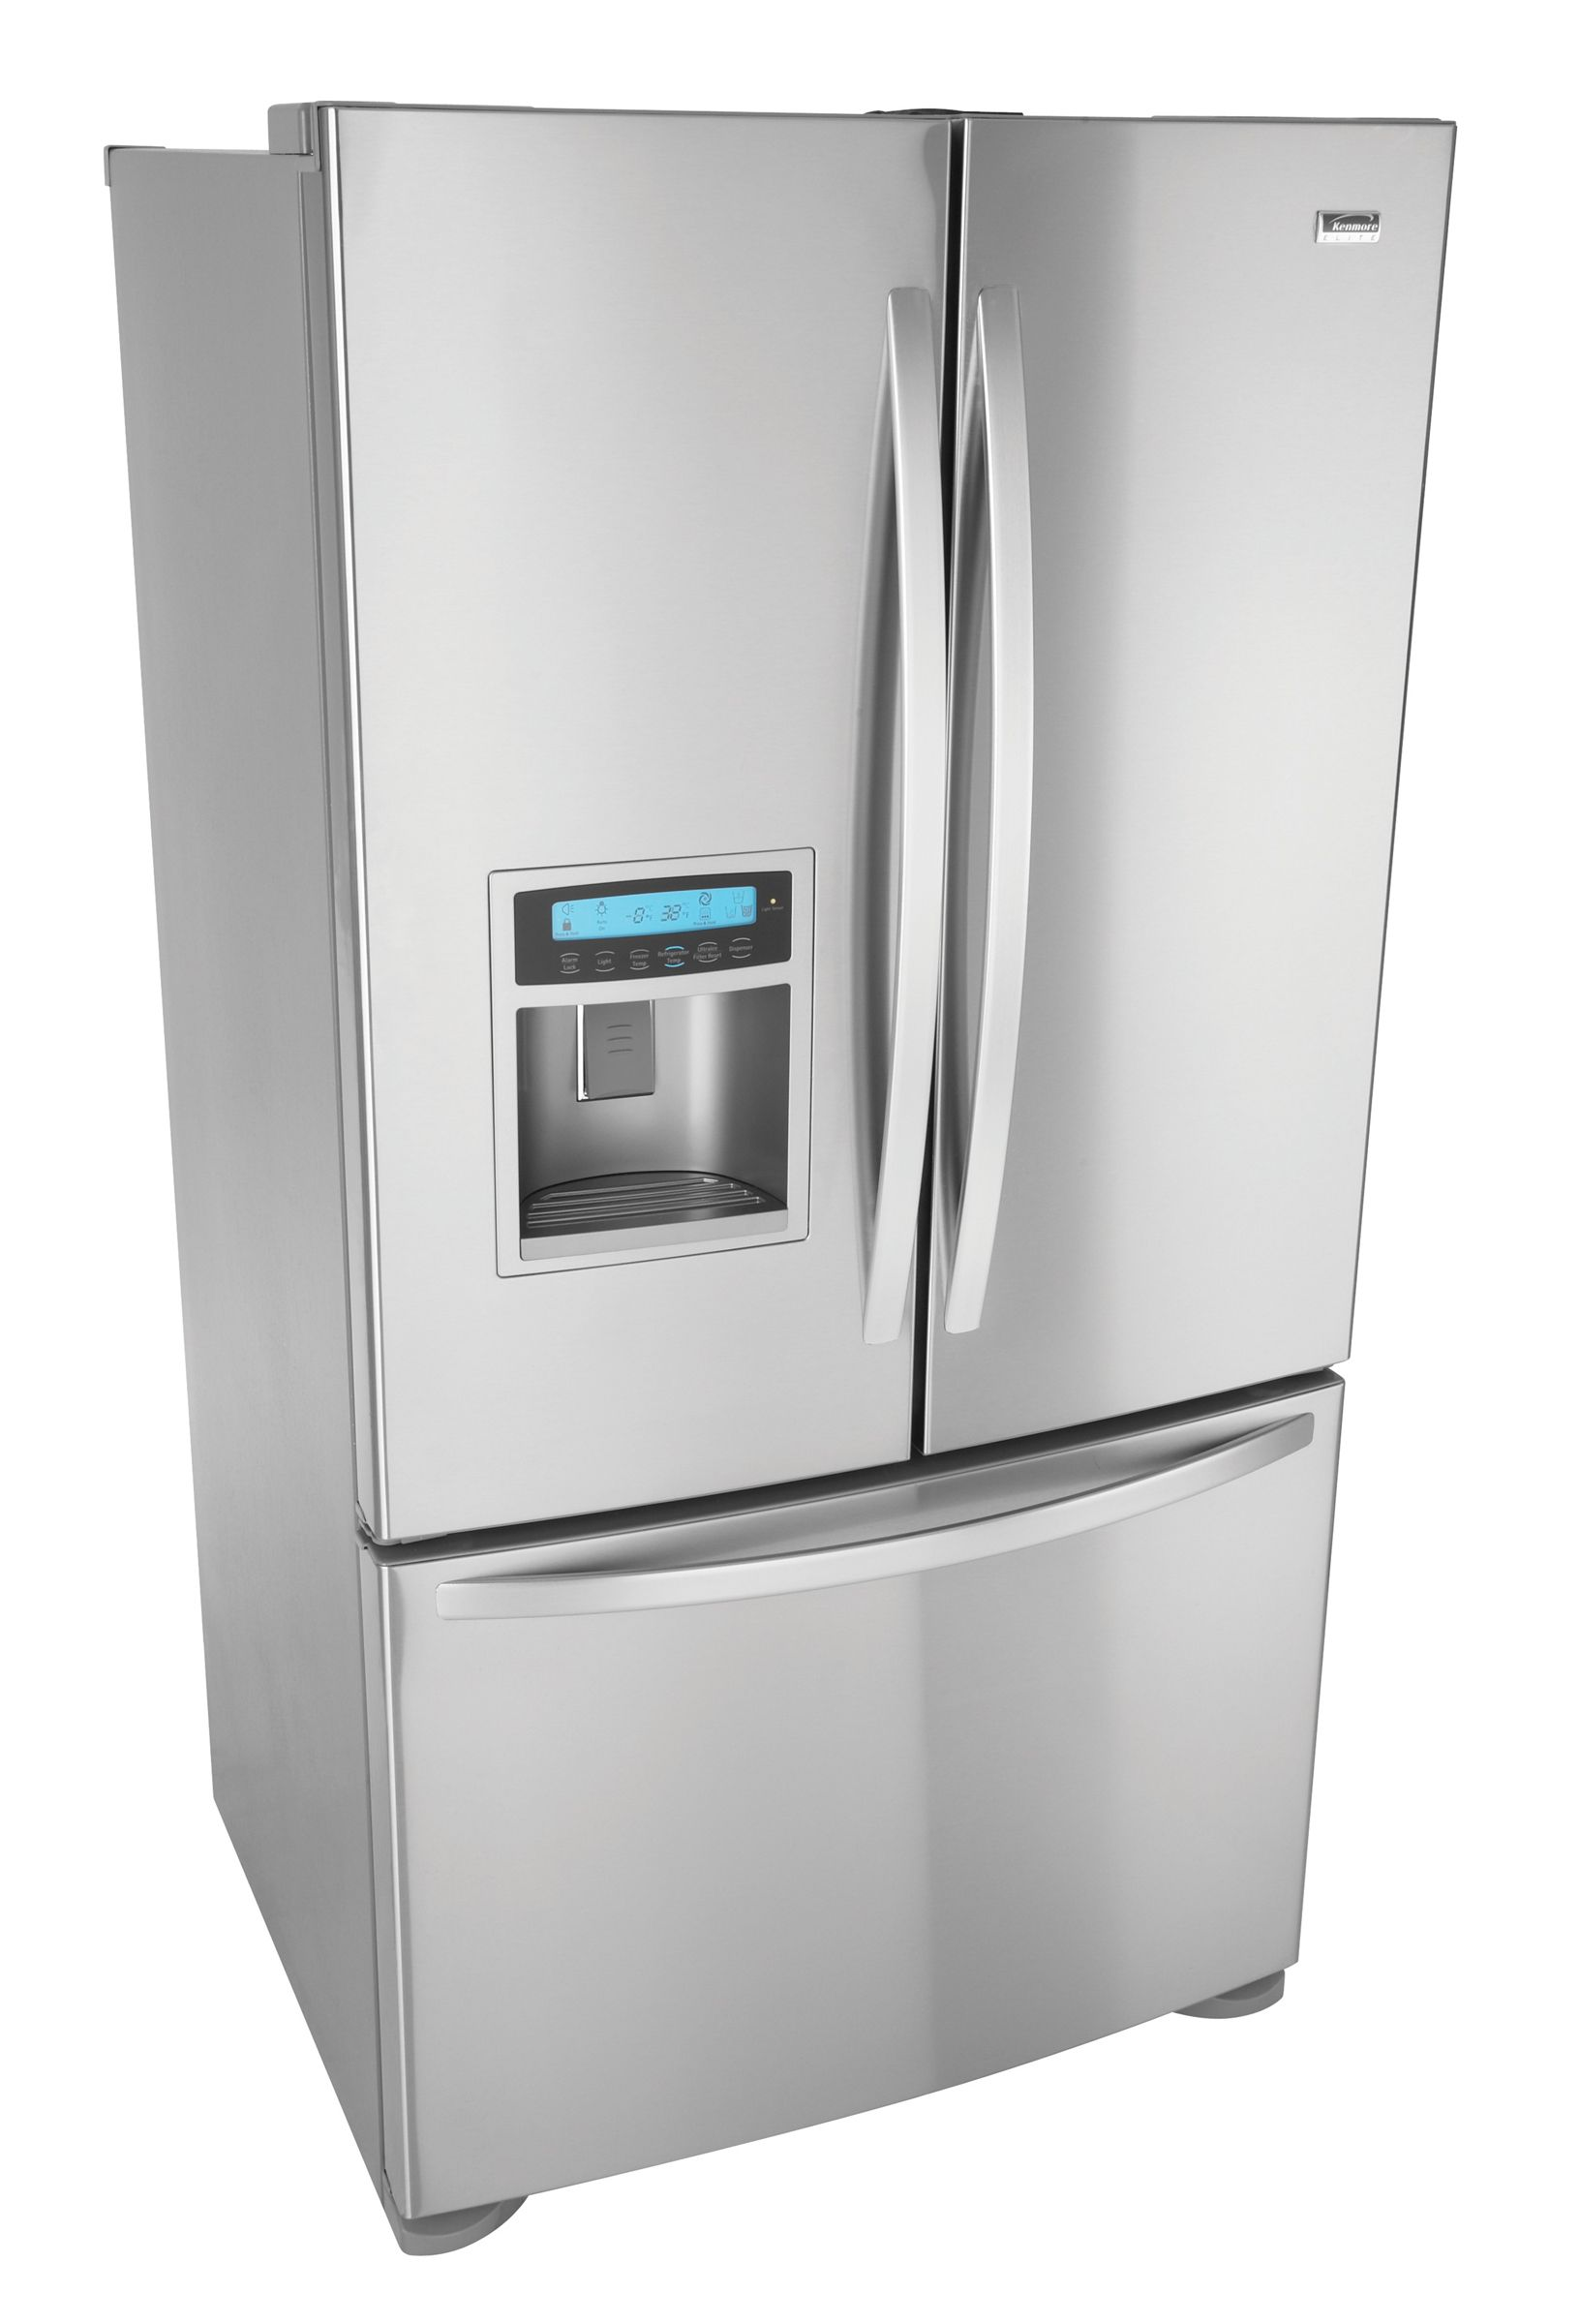 Kenmore Elite 25.0 cu. ft. TRIO® Ice & Water Dispensing French-Door Refrigerator